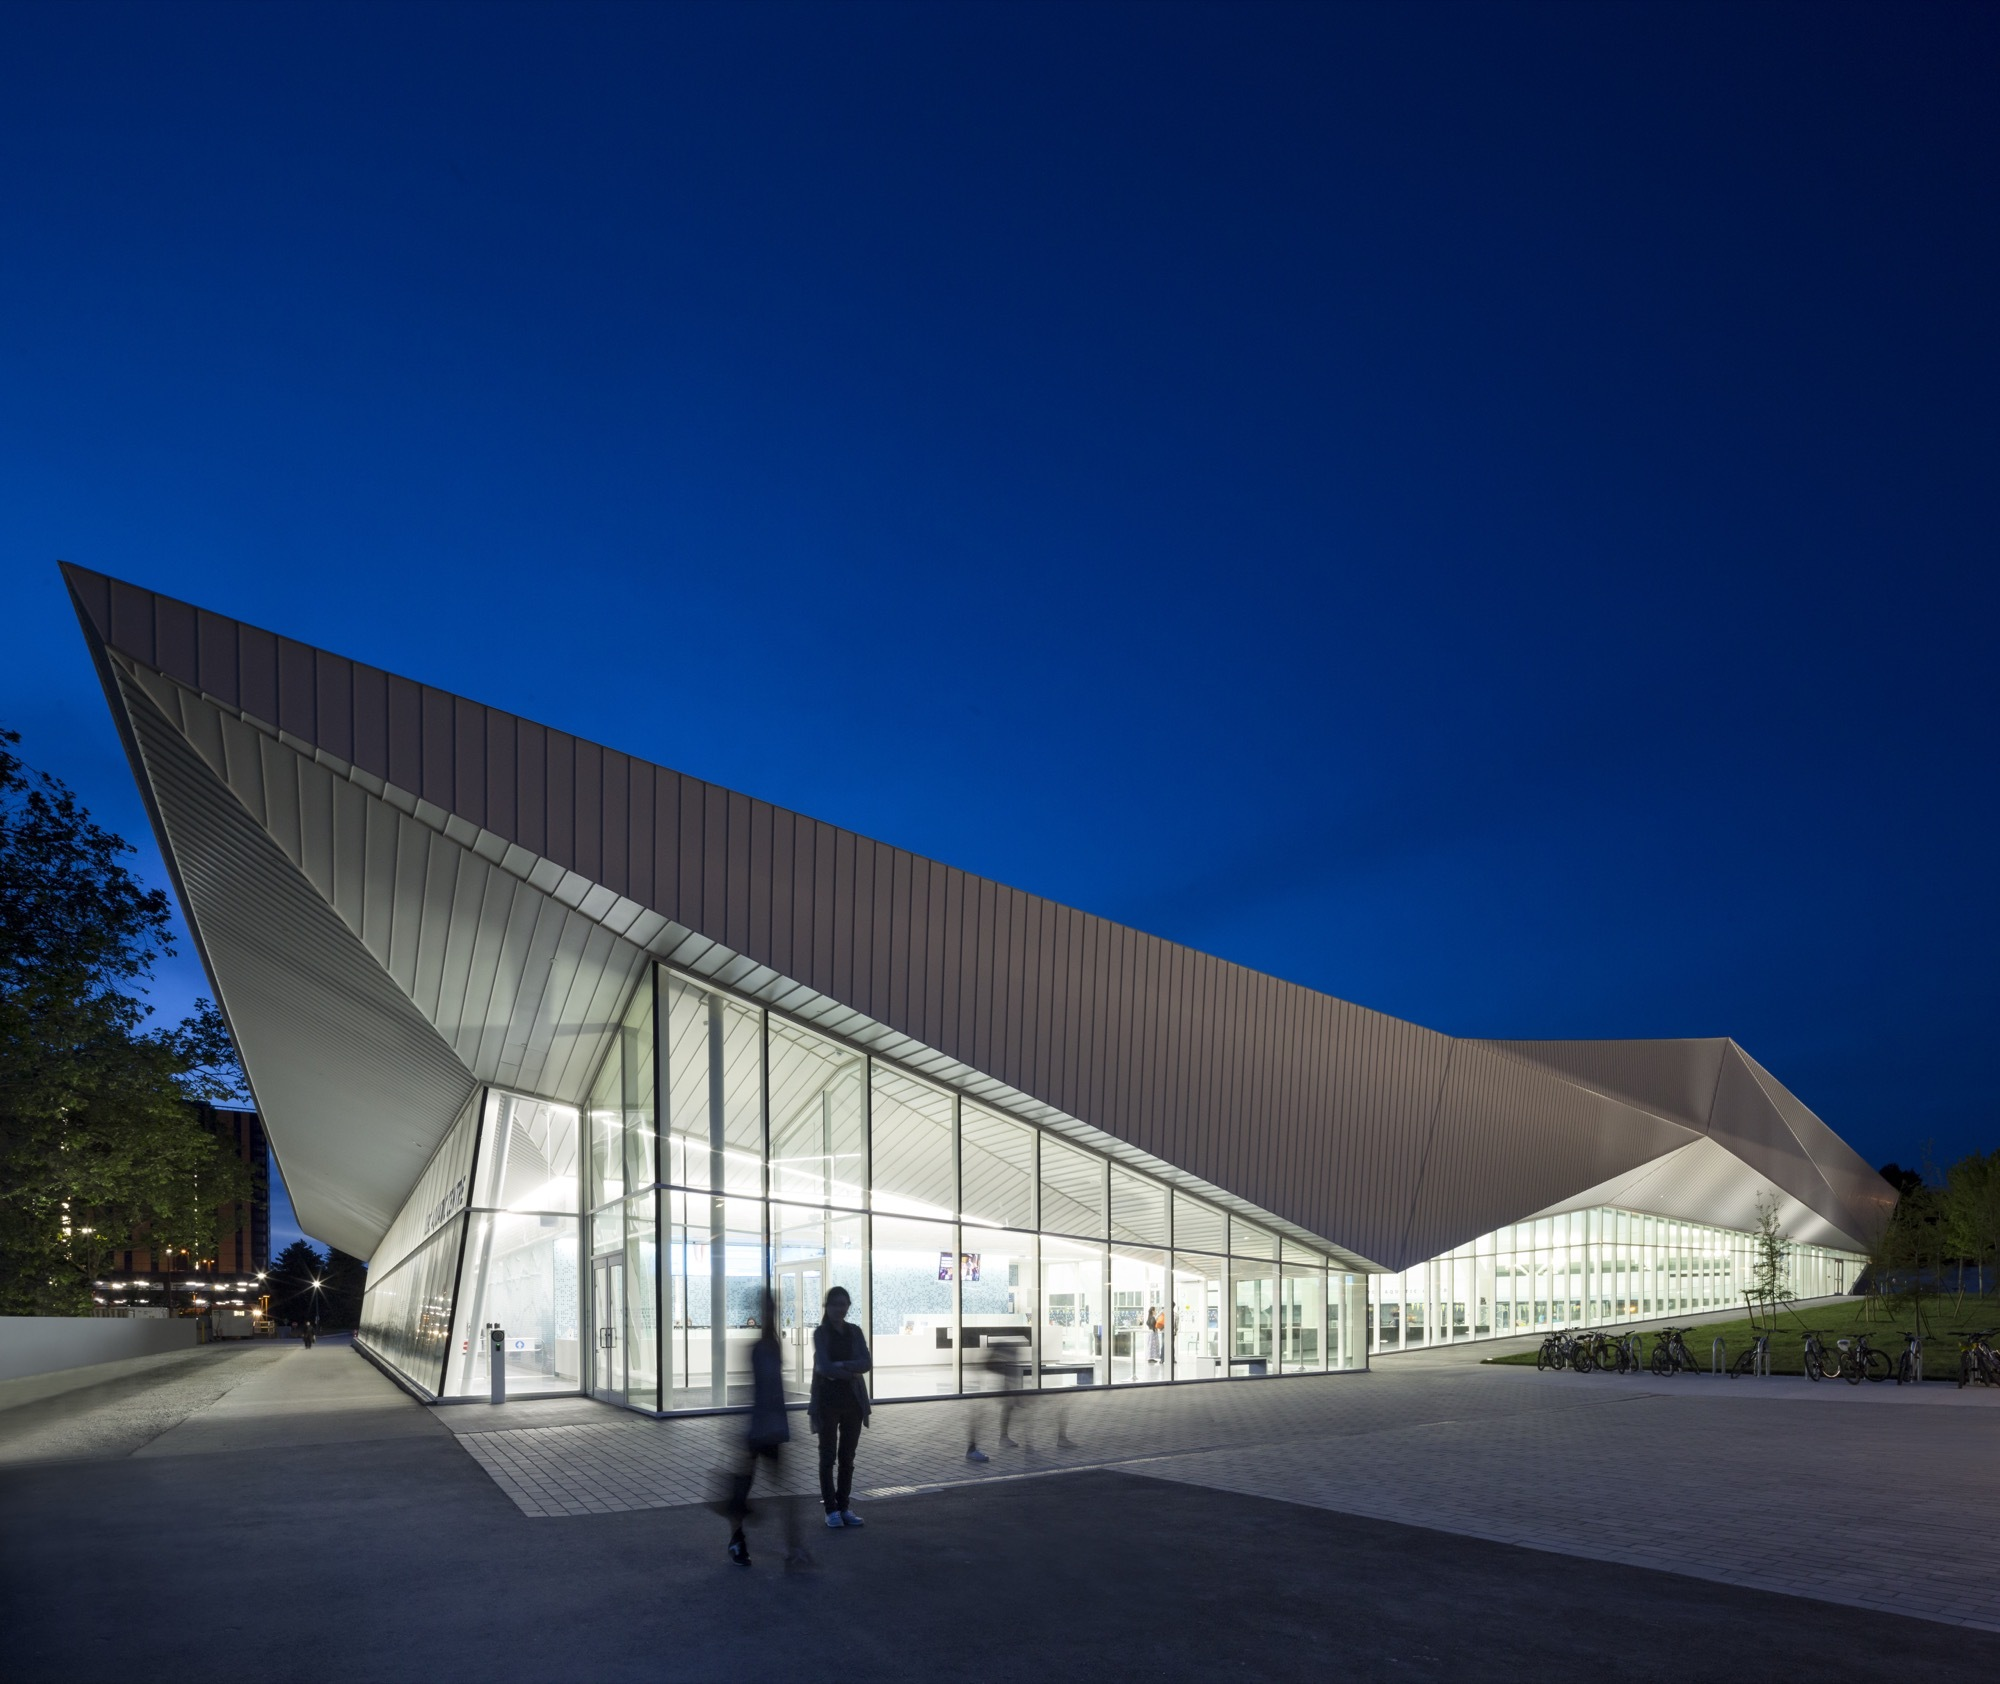 Ubc aquatic centre acton ostry architects mjma archdaily for Pool design vancouver